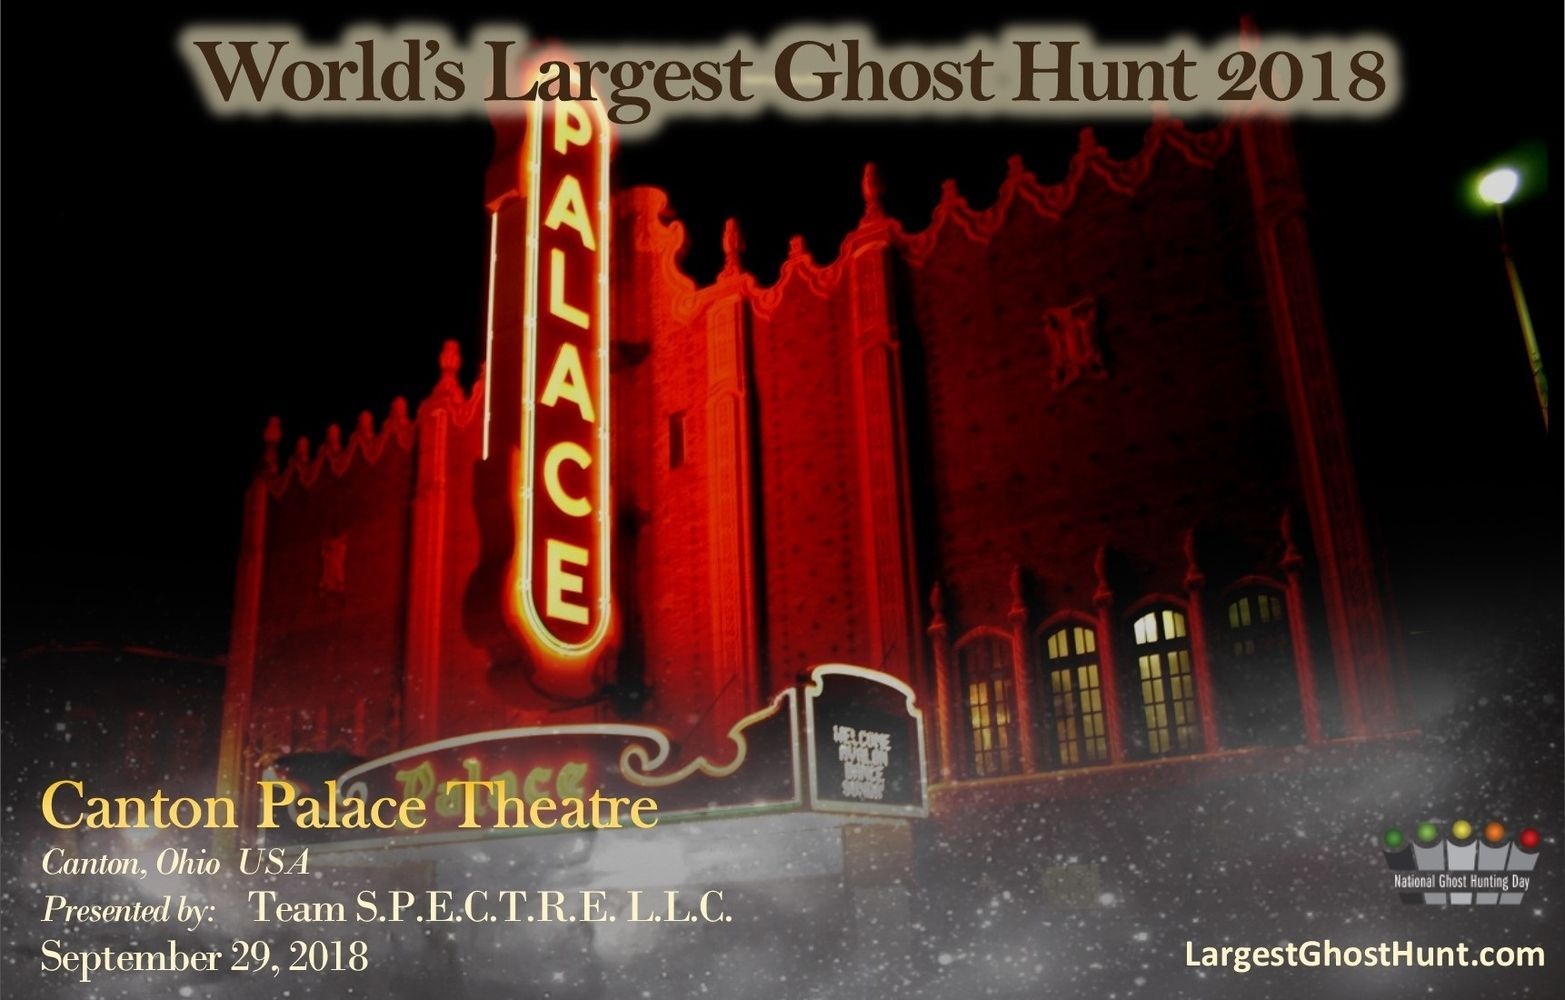 001-oh-cantonpalacetheatre